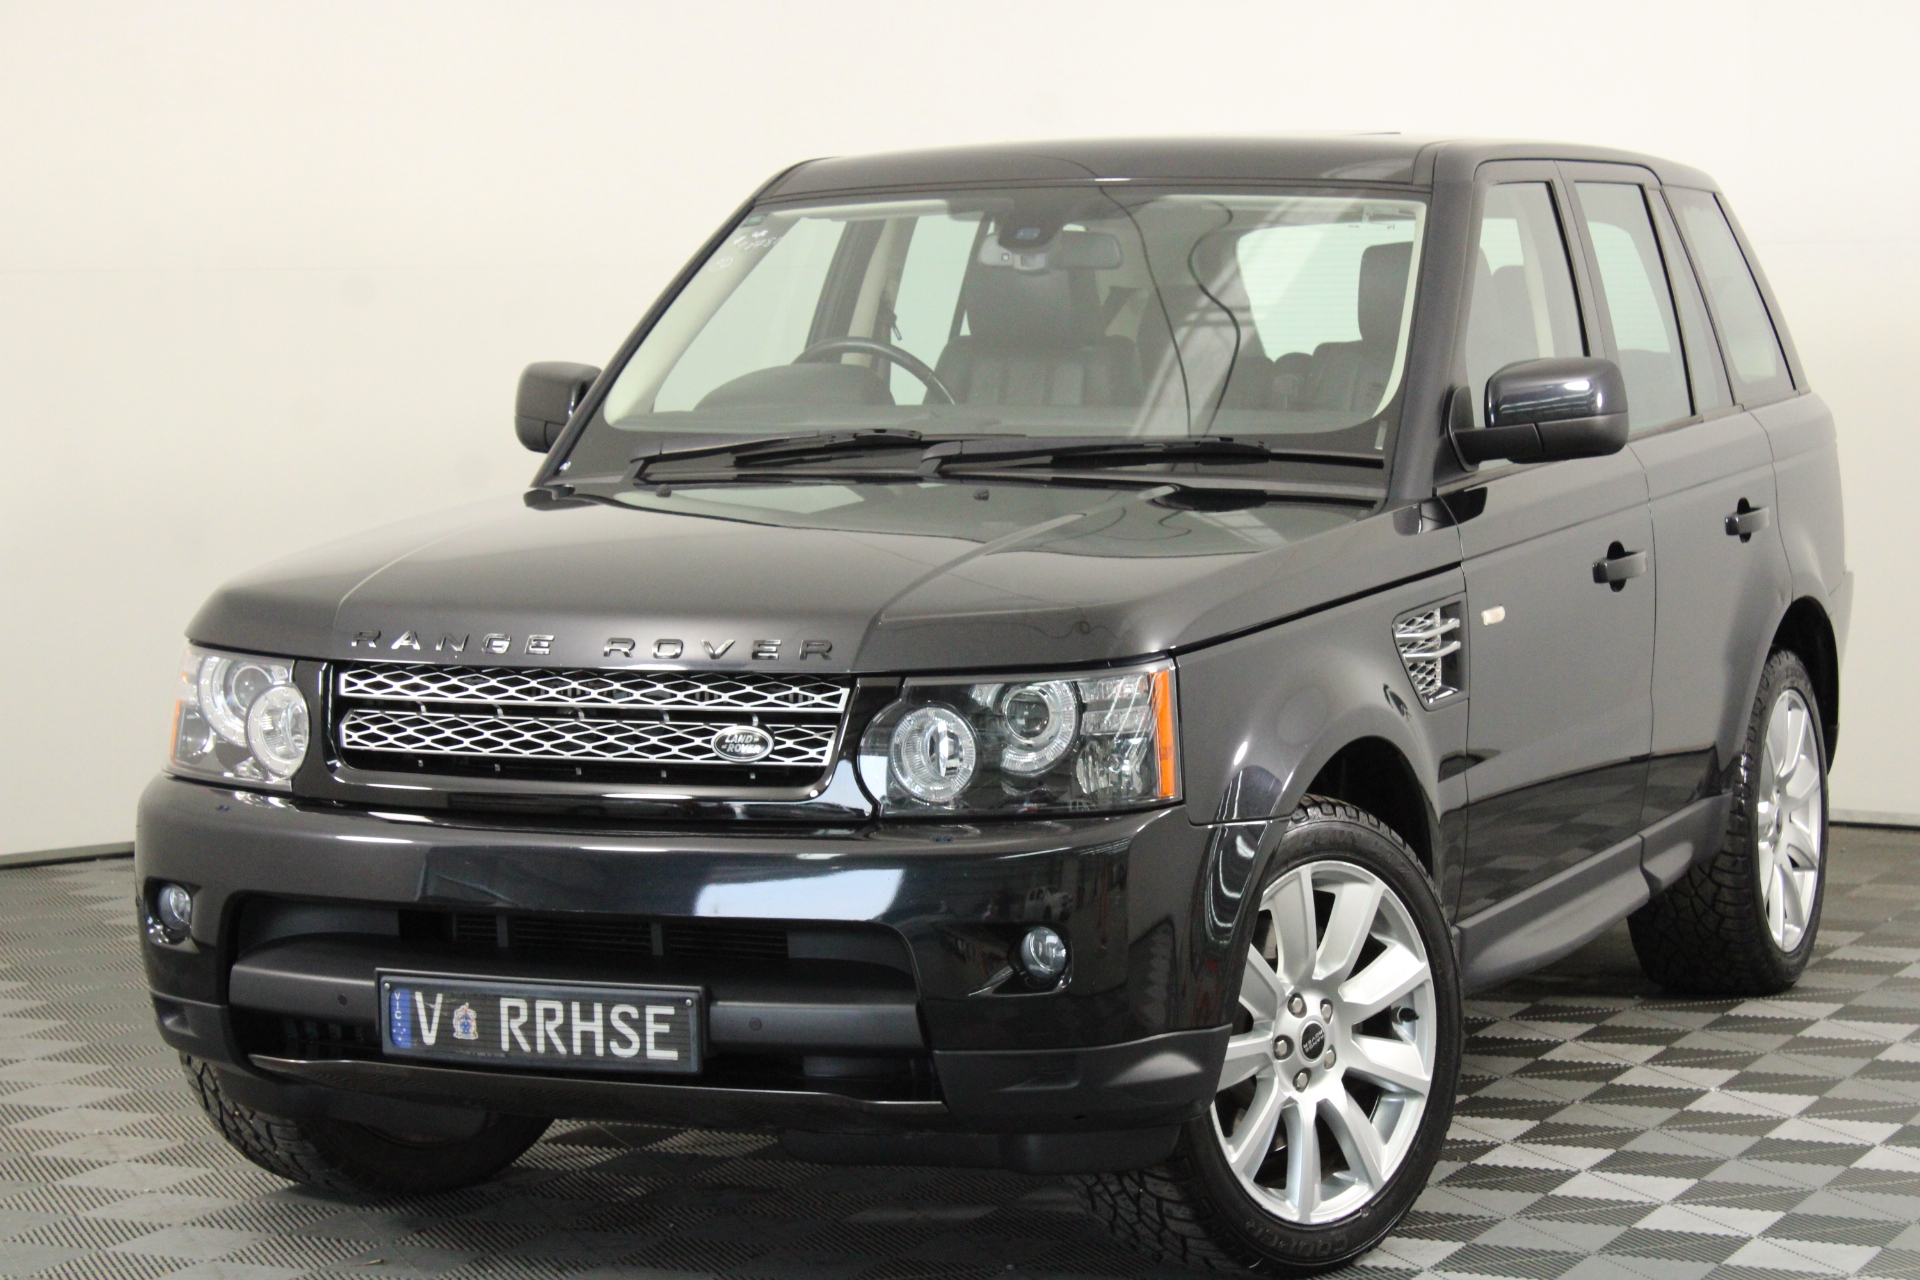 2011 Land Rover Range Rover Sport 3.0 TDV6 LUXURY T/D Automatic Wagon